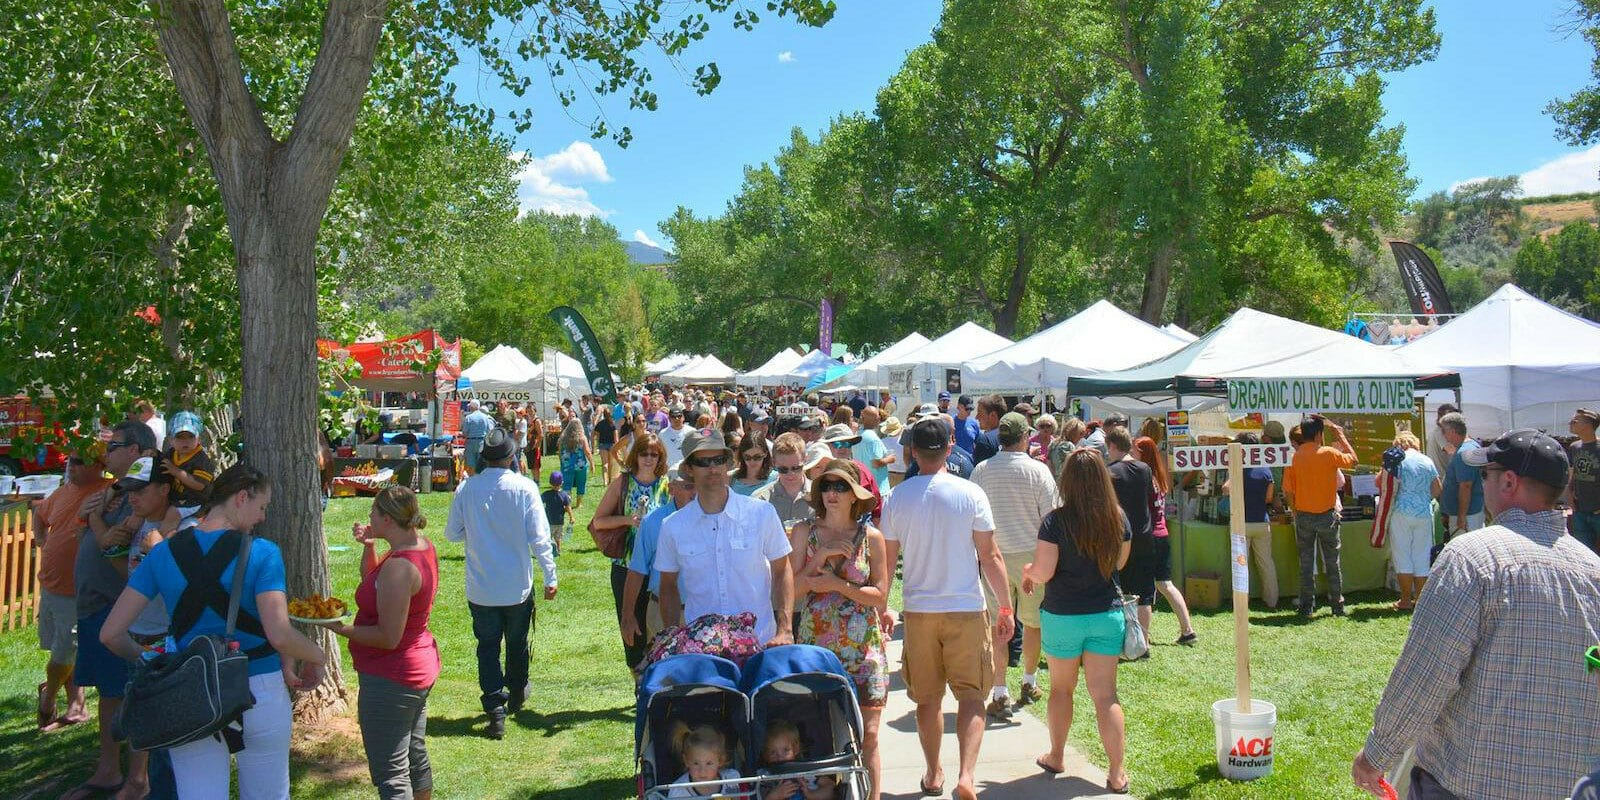 Image of the crowds at the Palisade Peach Festival in Colorado